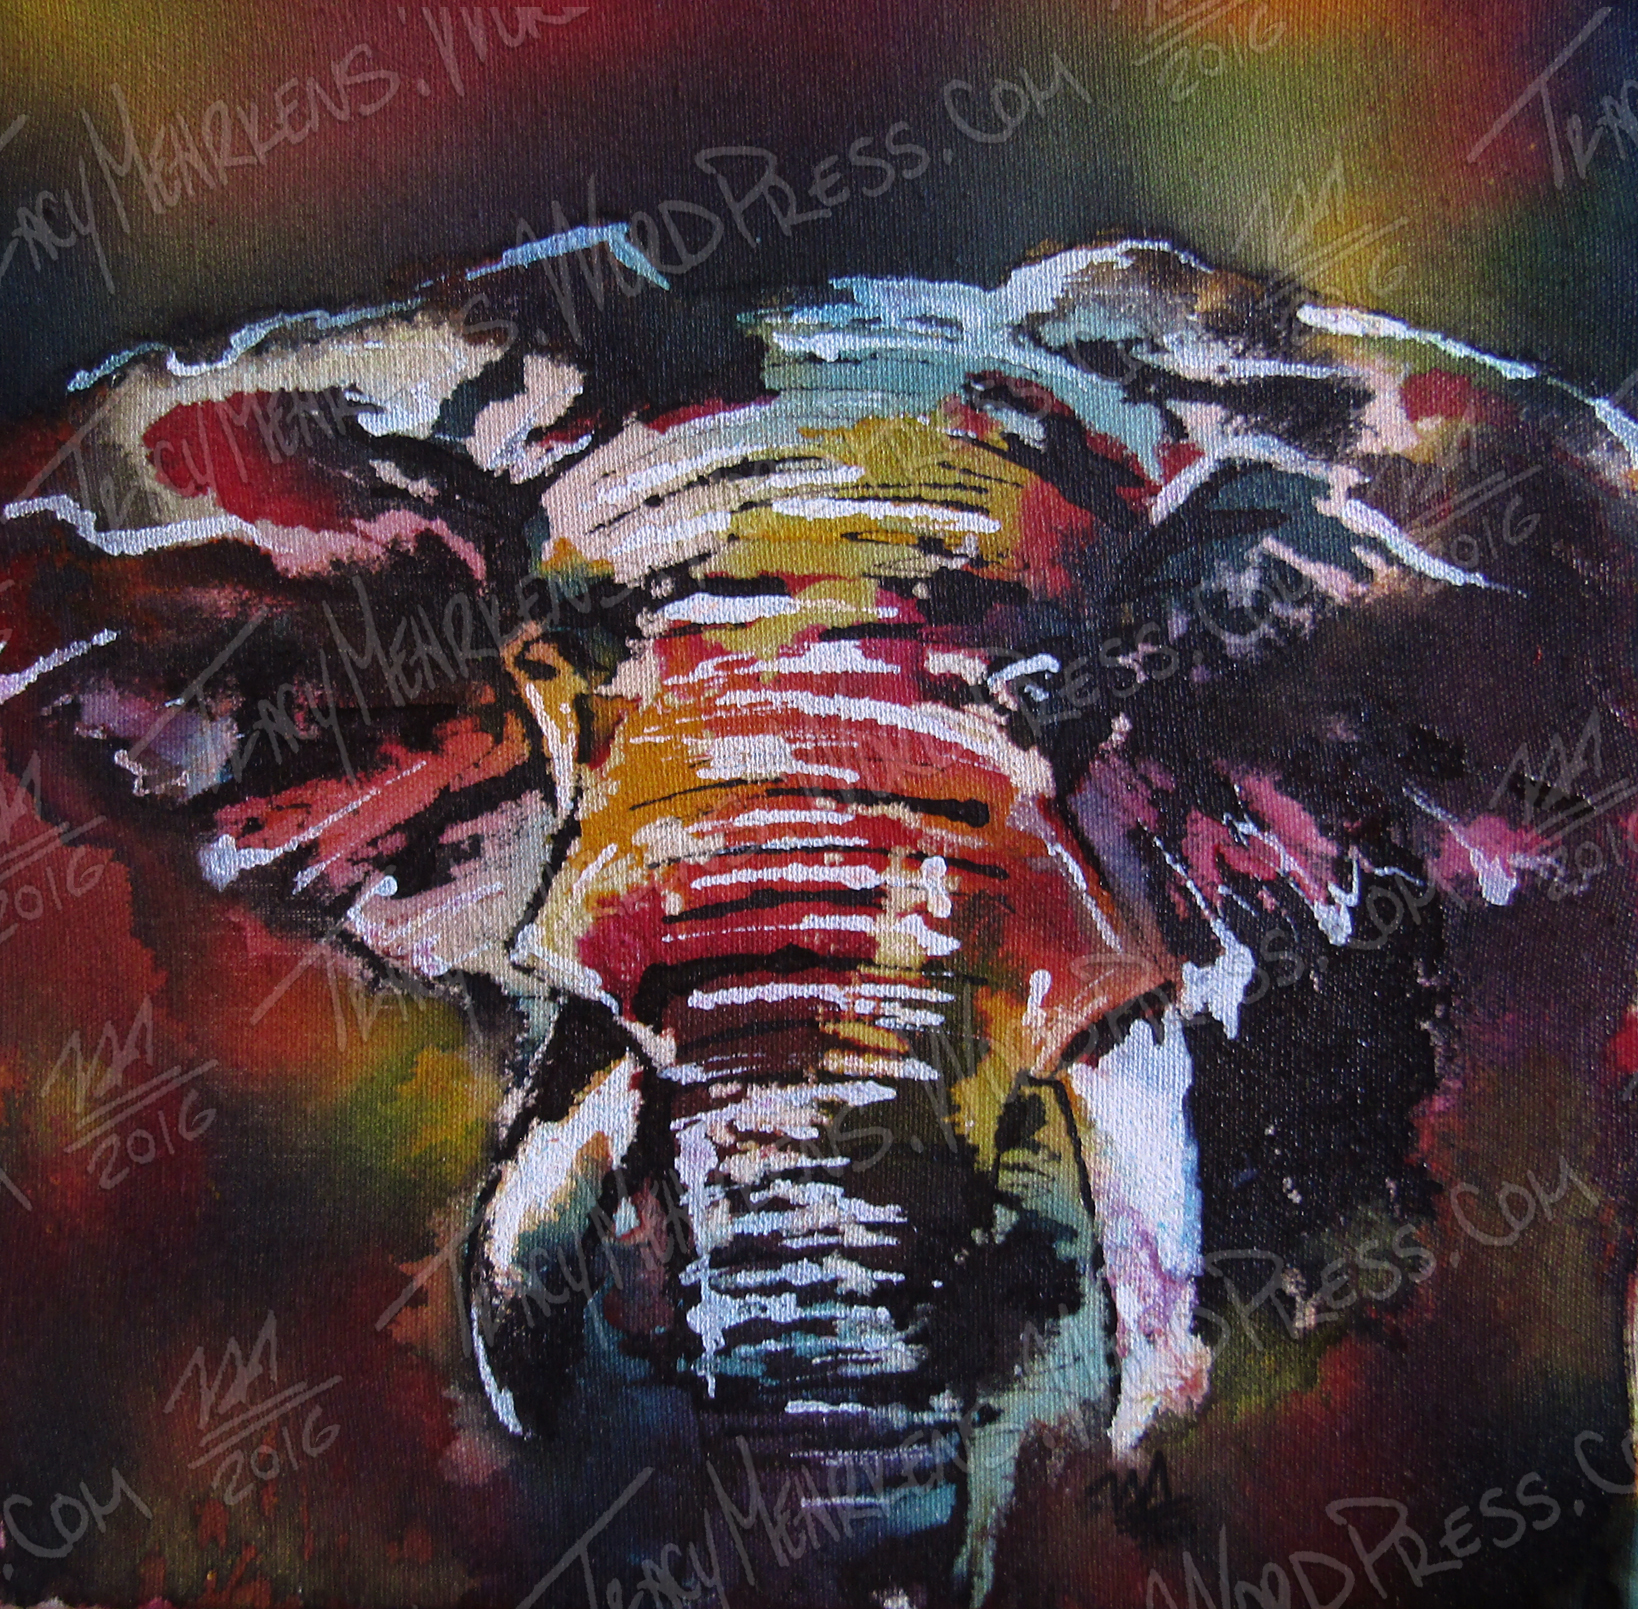 Elephant. Mixed Media on Canvas. 2016.